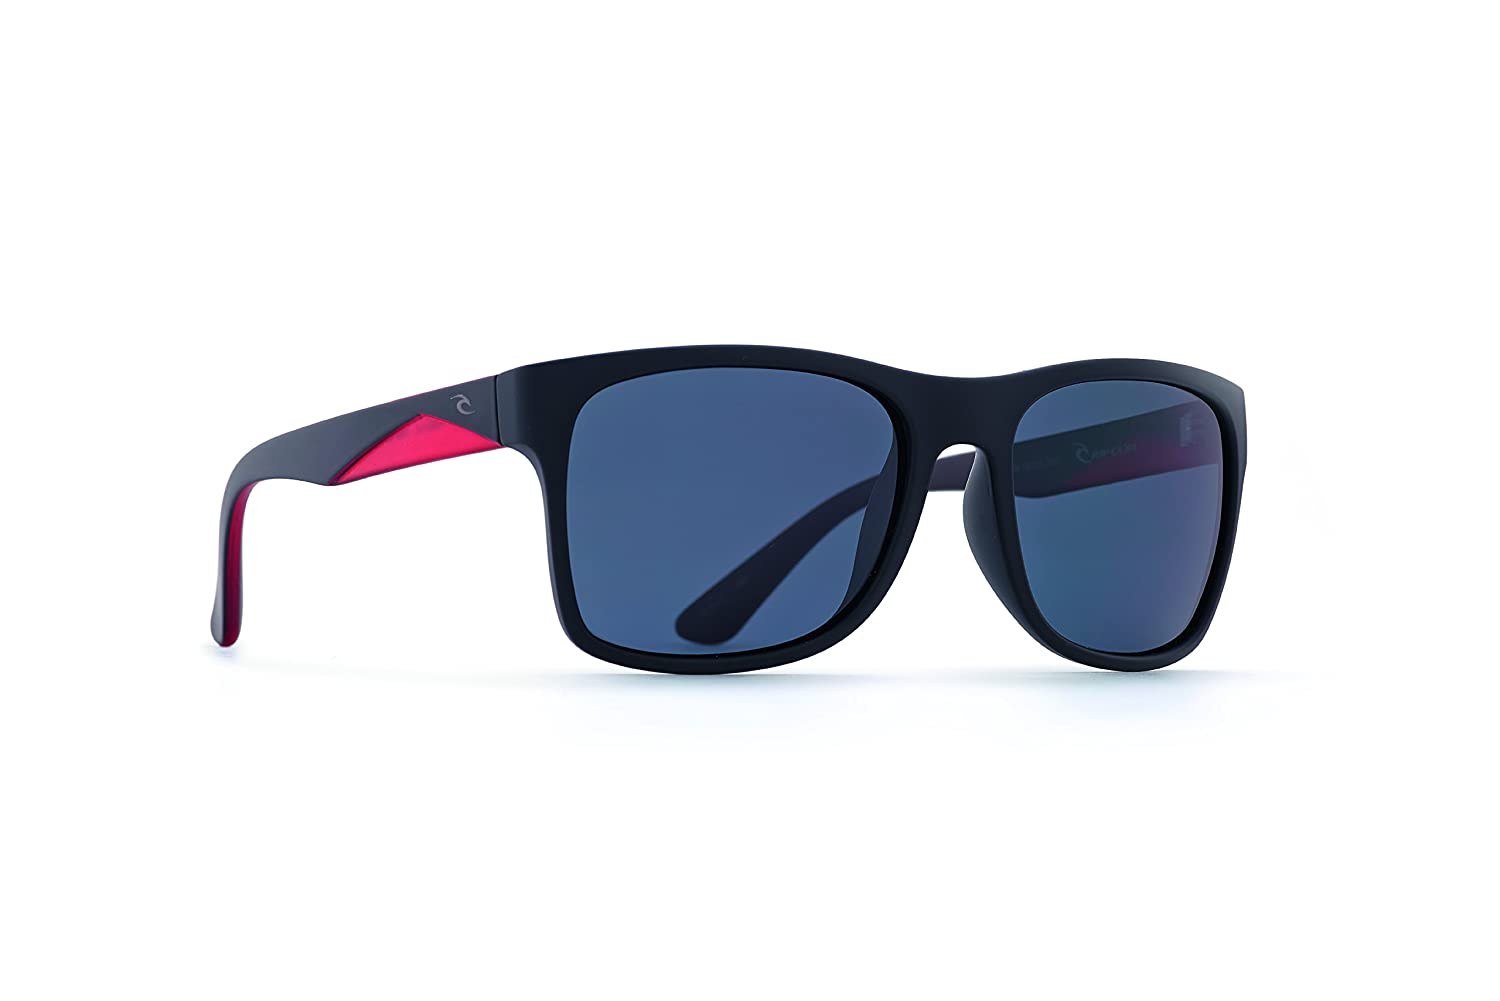 10412f1735 RIP CURL Polarized Sunglasses r2512 C Matt Black Red with Grey Lens 100% UV  Block Sunglasses Polarized  Amazon.co.uk  Sports   Outdoors